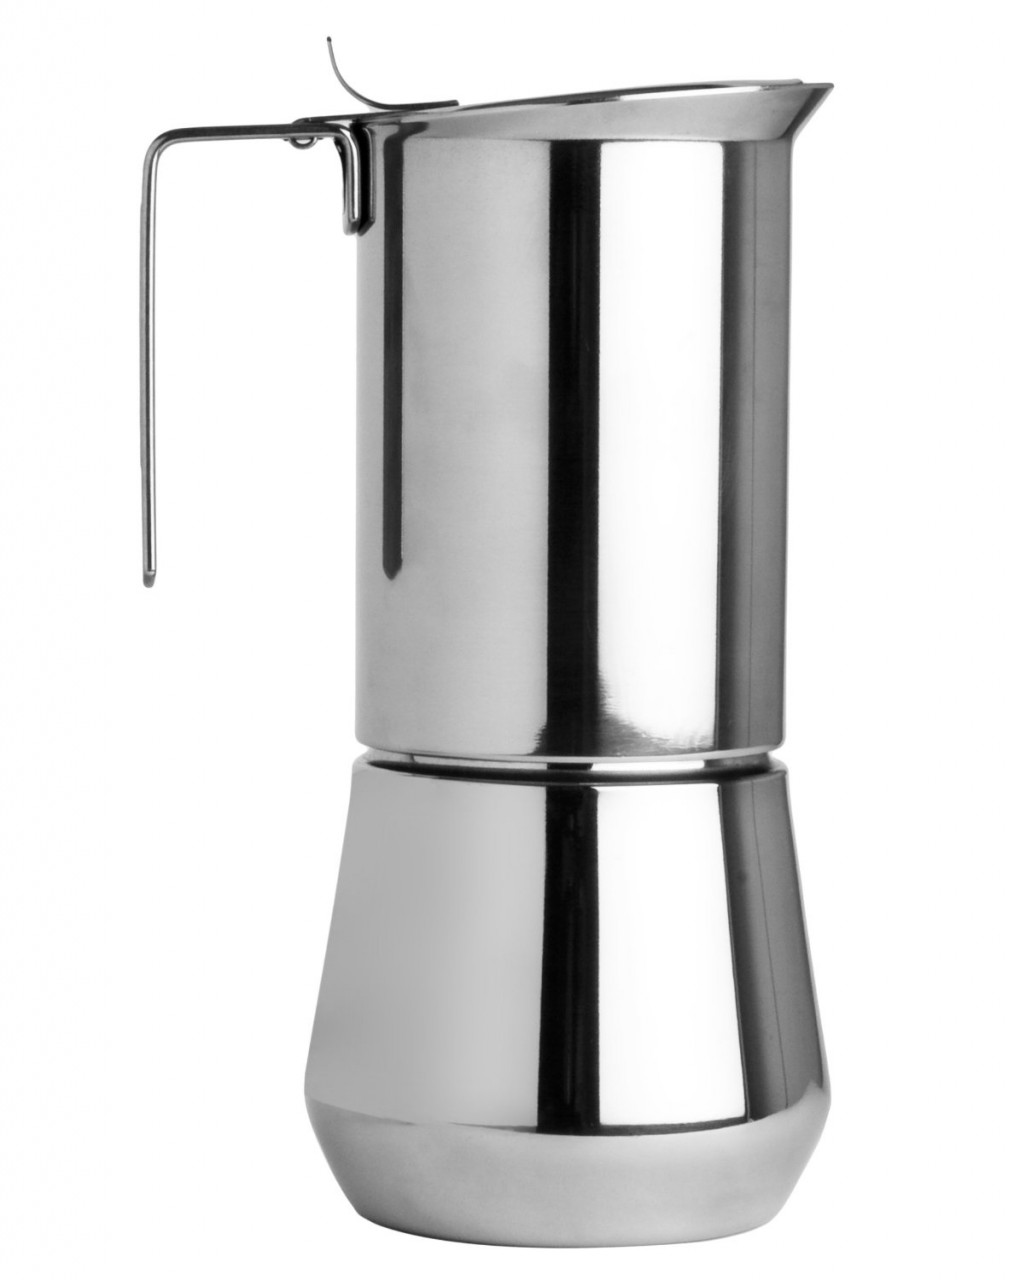 Coffee Maker Cup Size : Ilsa Turbo Express Stovetop Espresso Maker 1 cup size